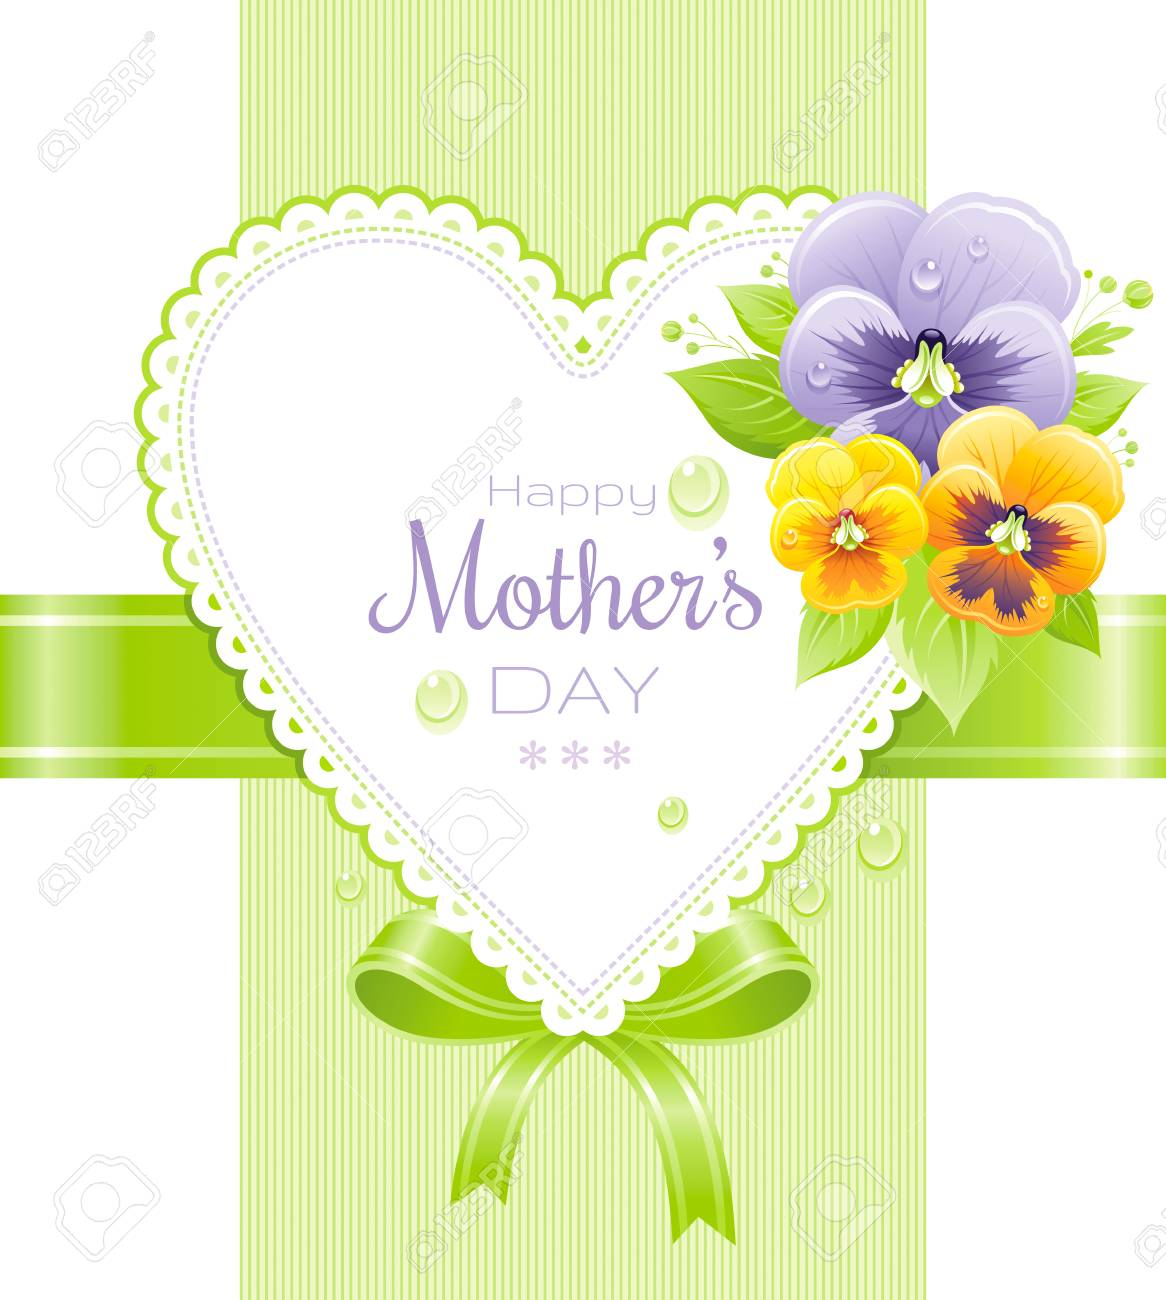 Happy Mothers Day Greeting Card Design Violet Pansies On Green